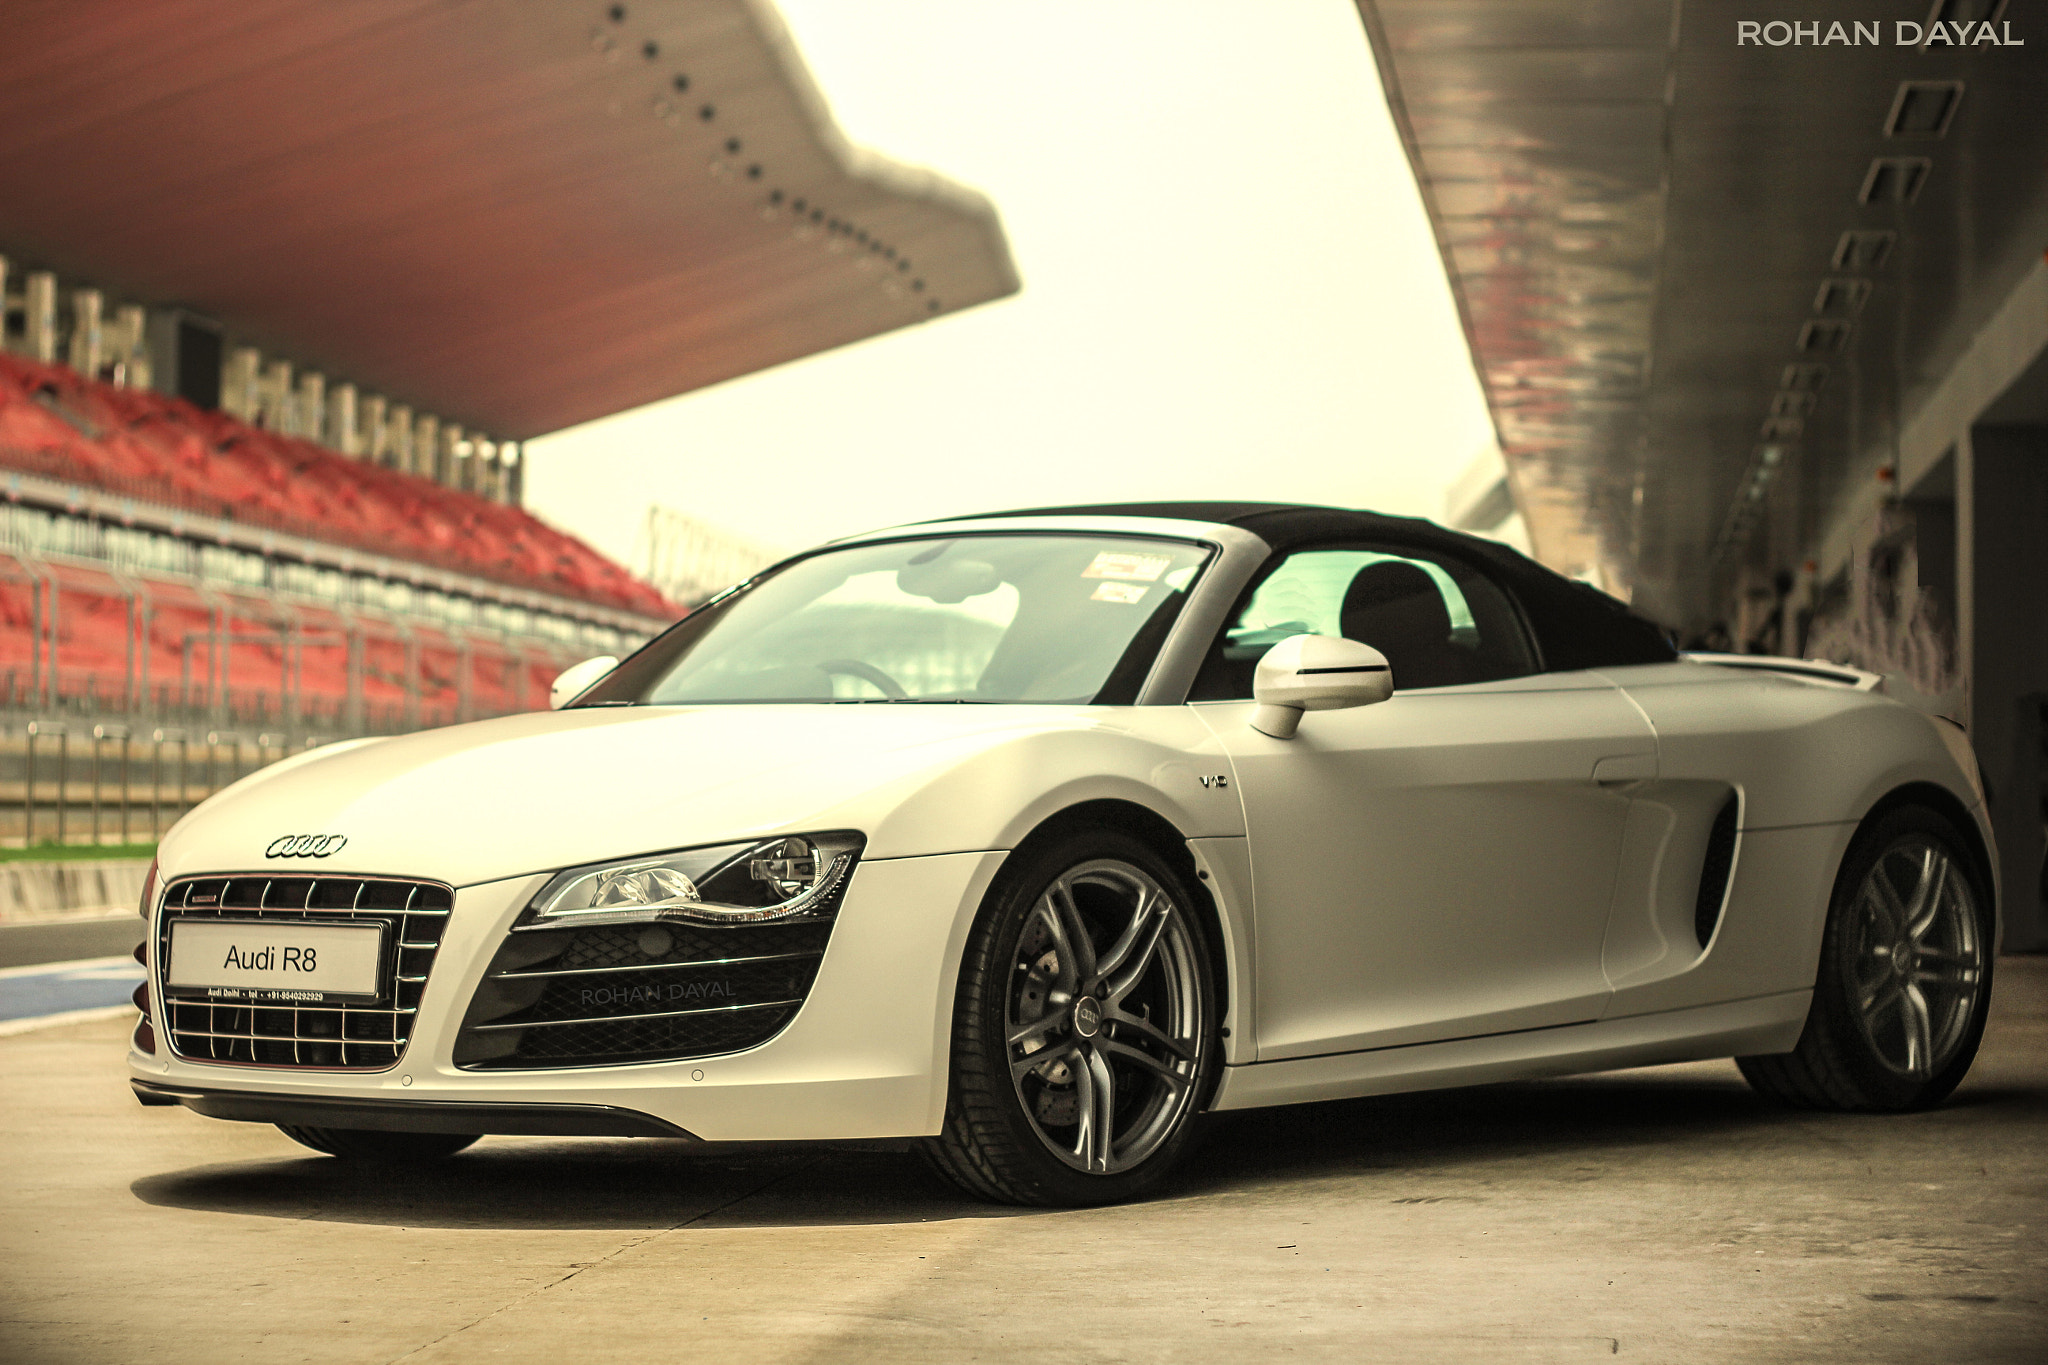 Photograph Audi R8 Spyder. by Rohan Dayal on 500px